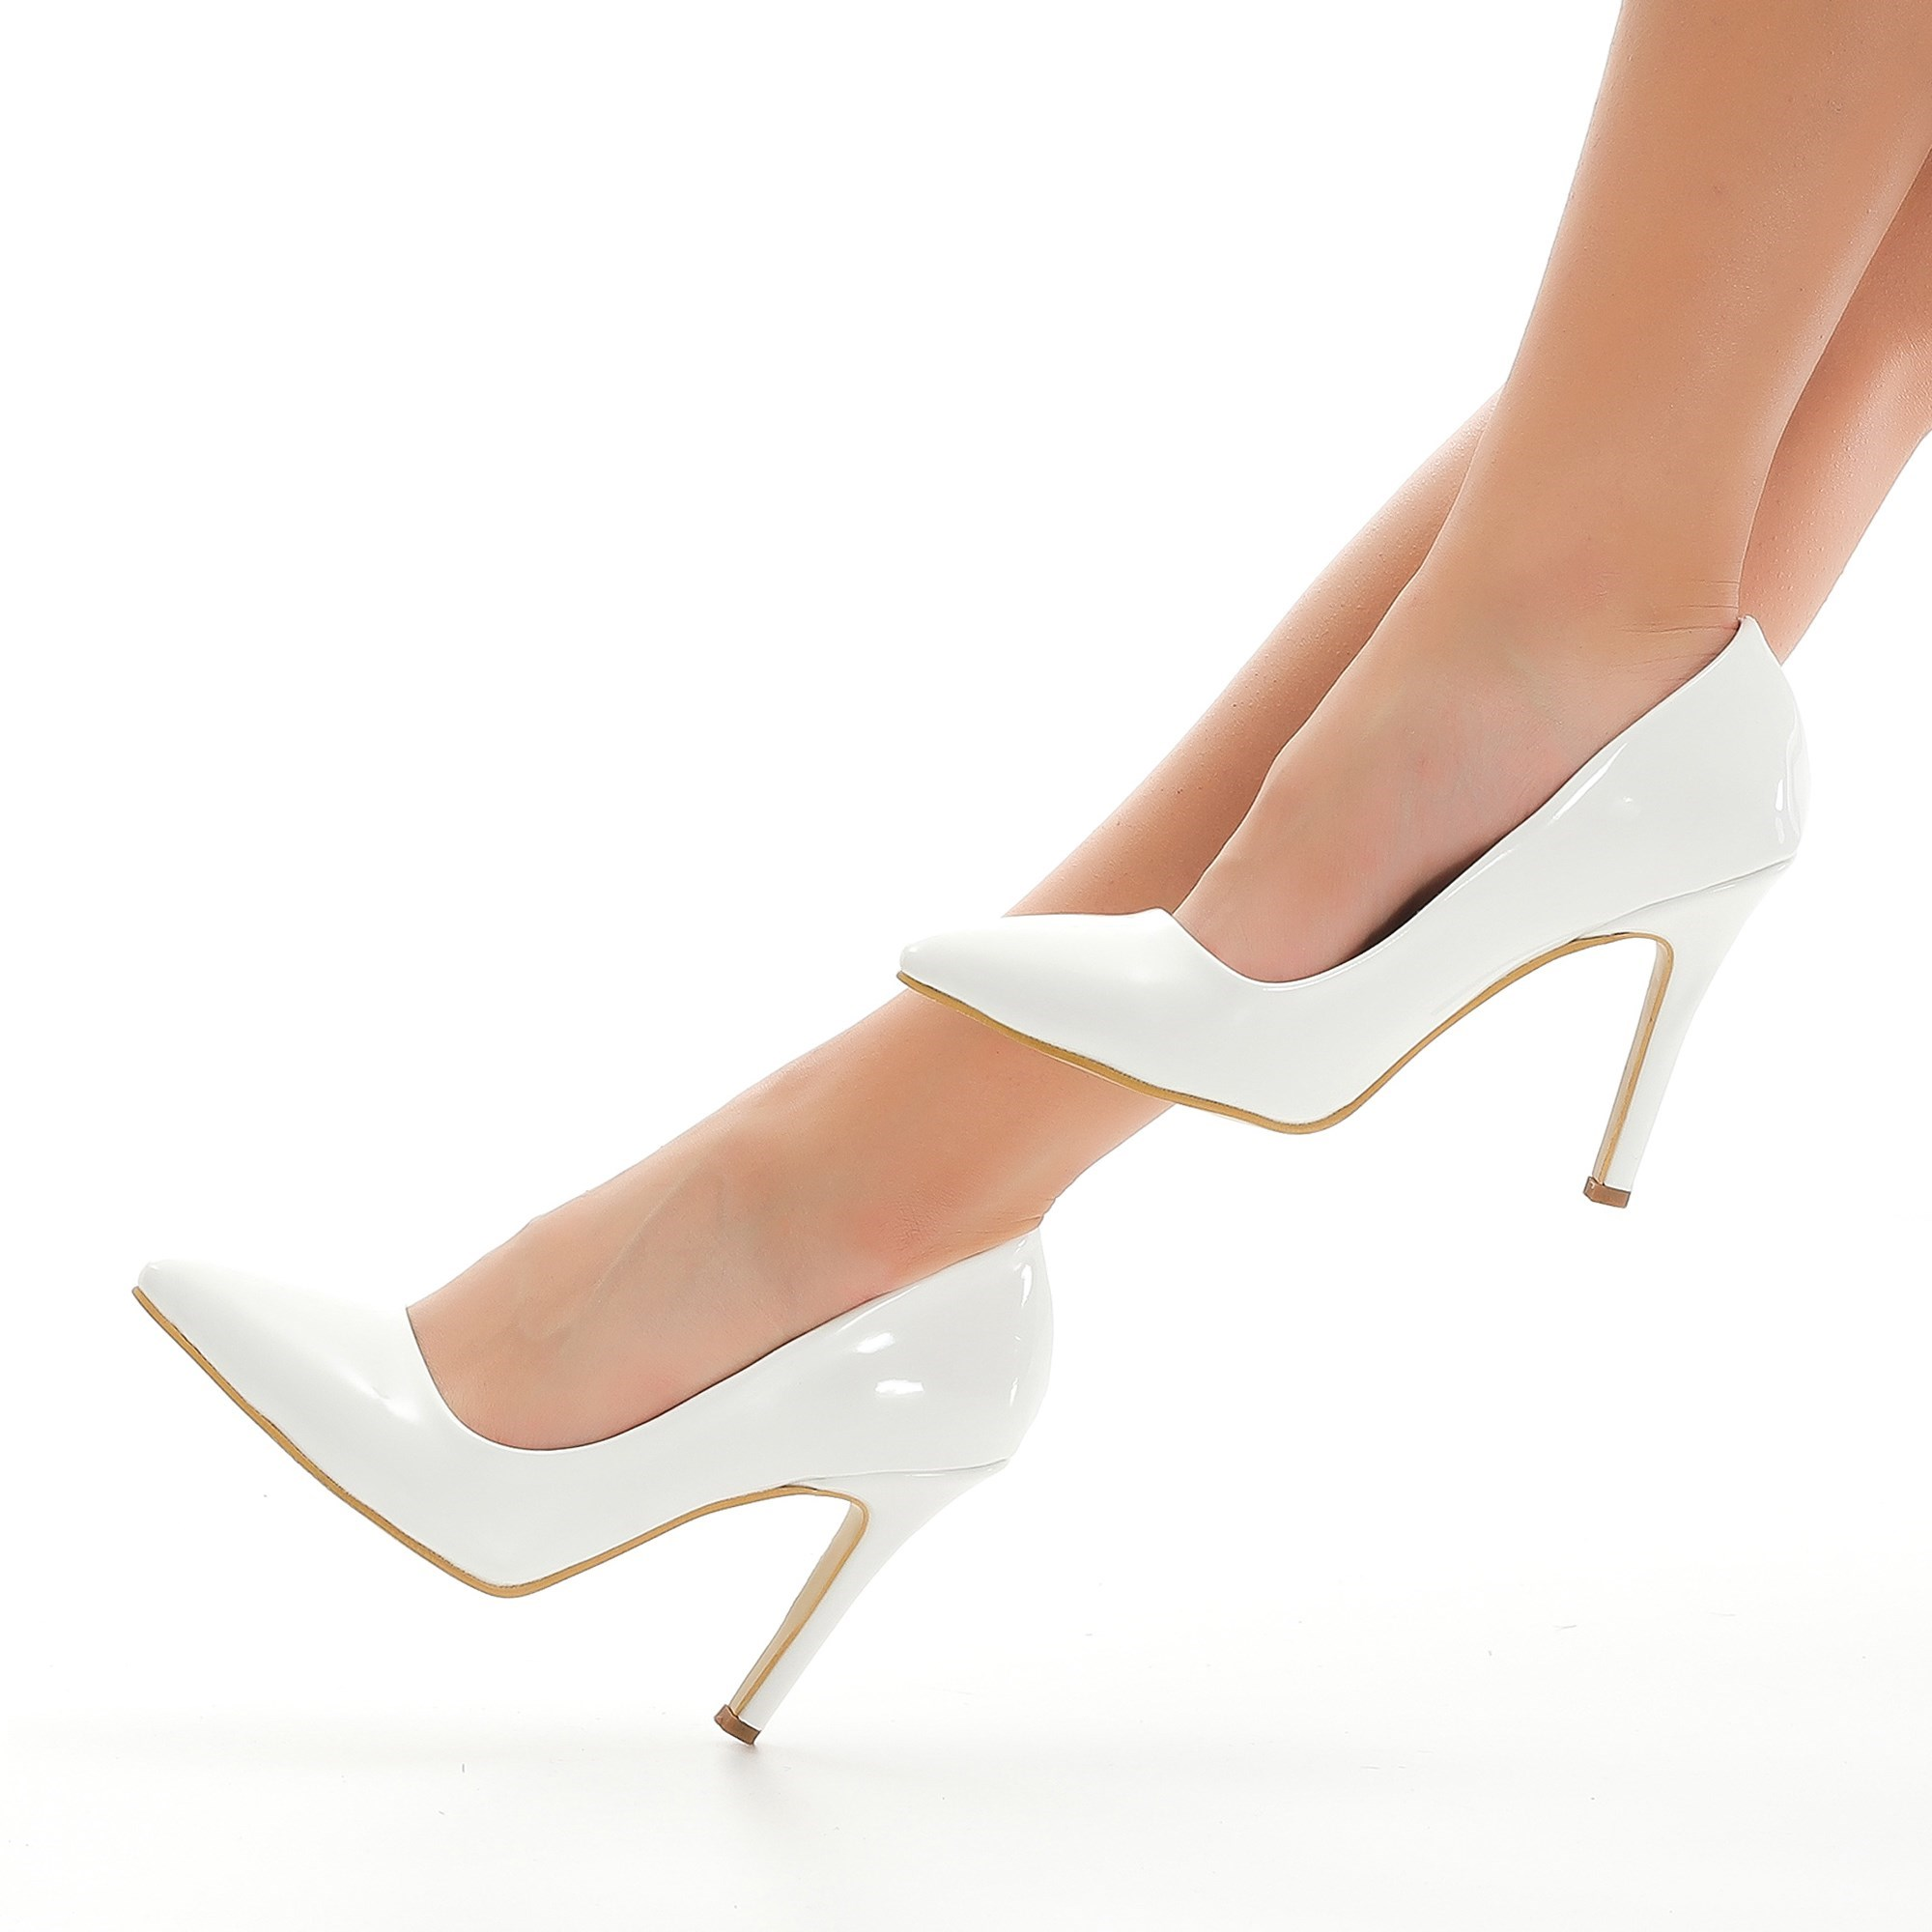 8womens shoes